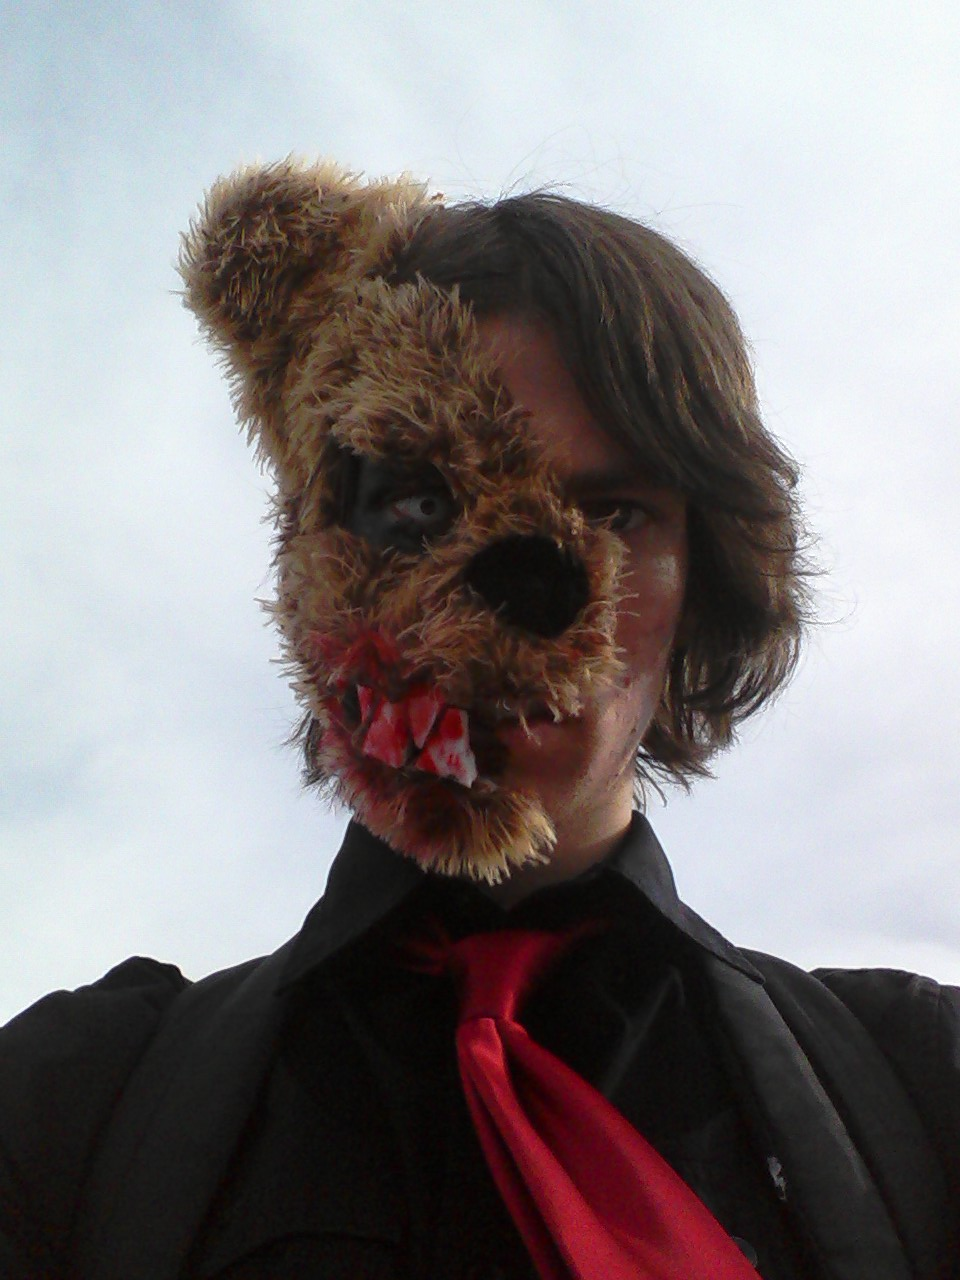 Five nights at freddy s cosplay 5 by bradthebs on deviantart